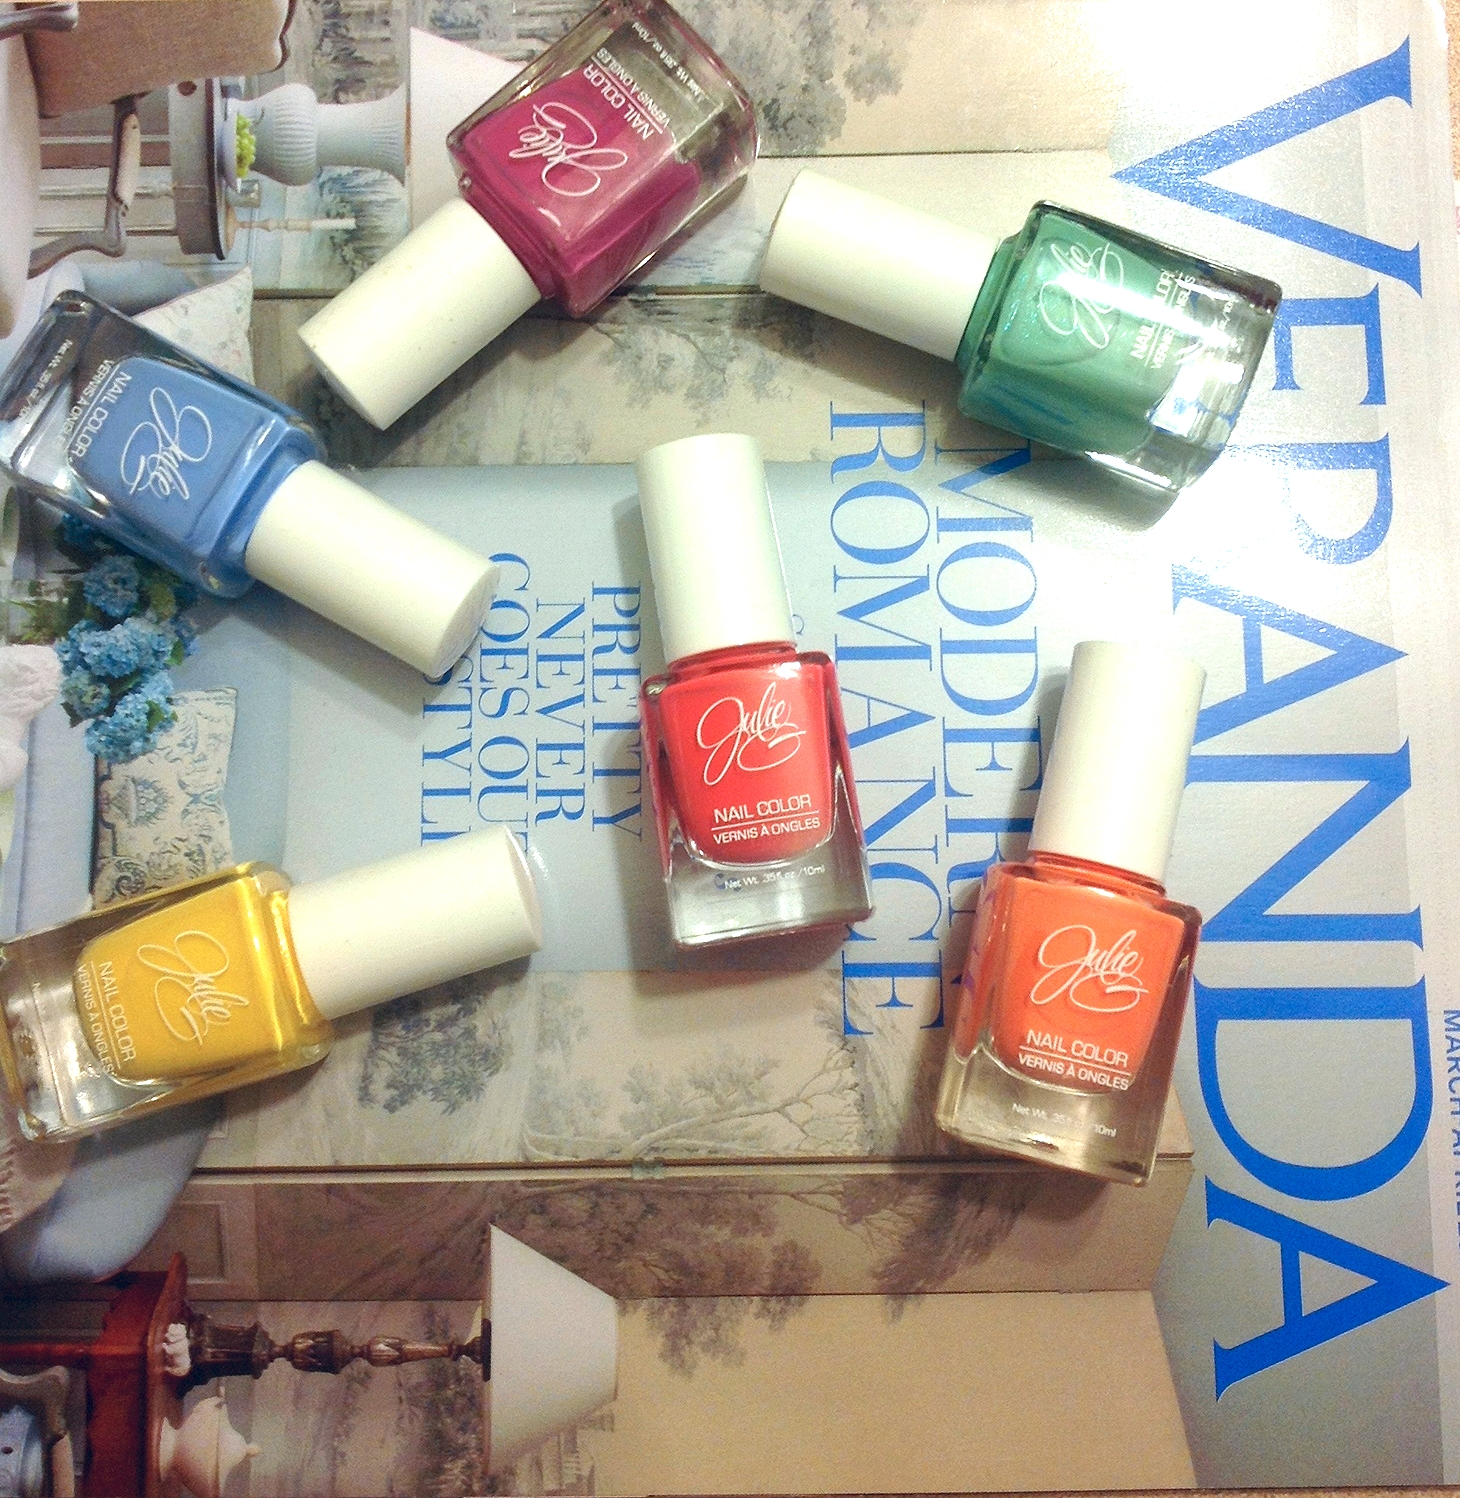 Julie G Nails Cruise Collection.JPG